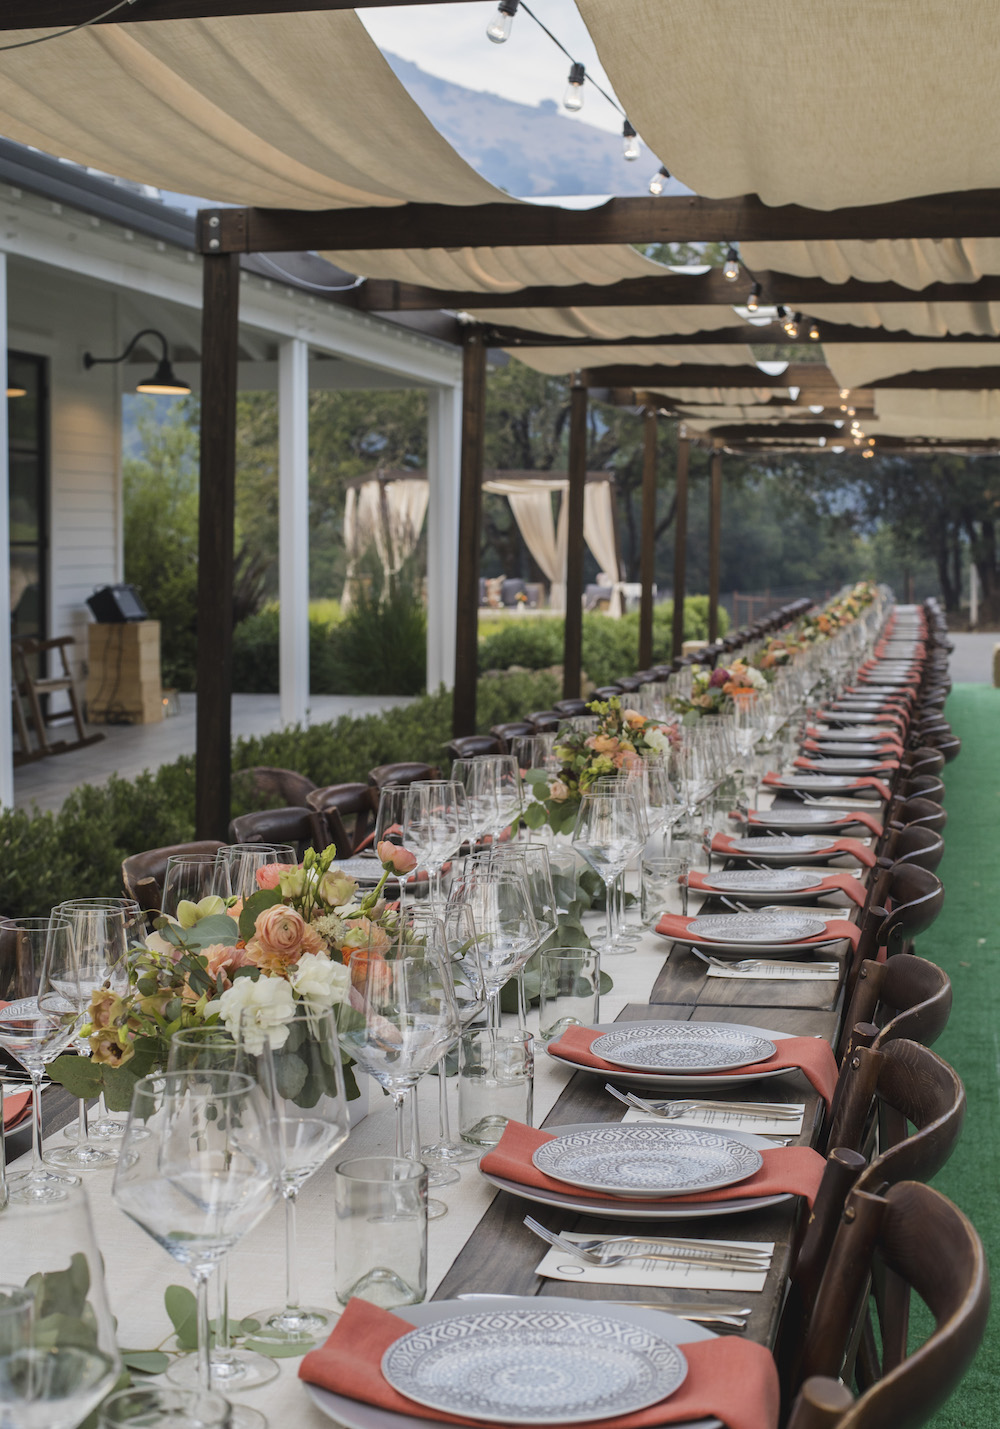 Promise Wines 15th Anniversary Dinner - ROQUE Events12.JPG